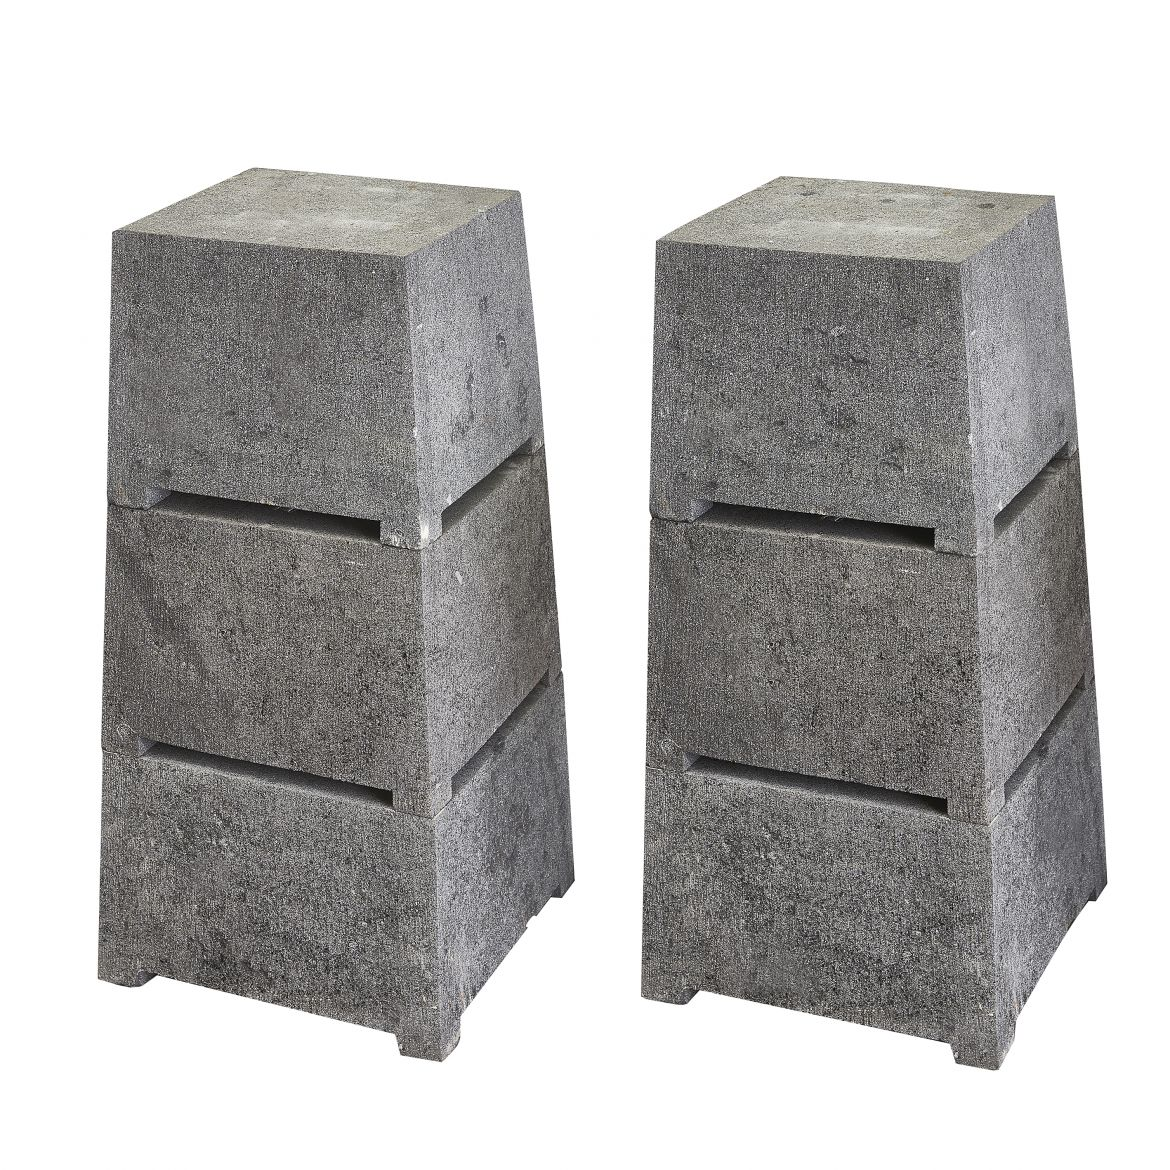 Pair Three Part Stone Plinths